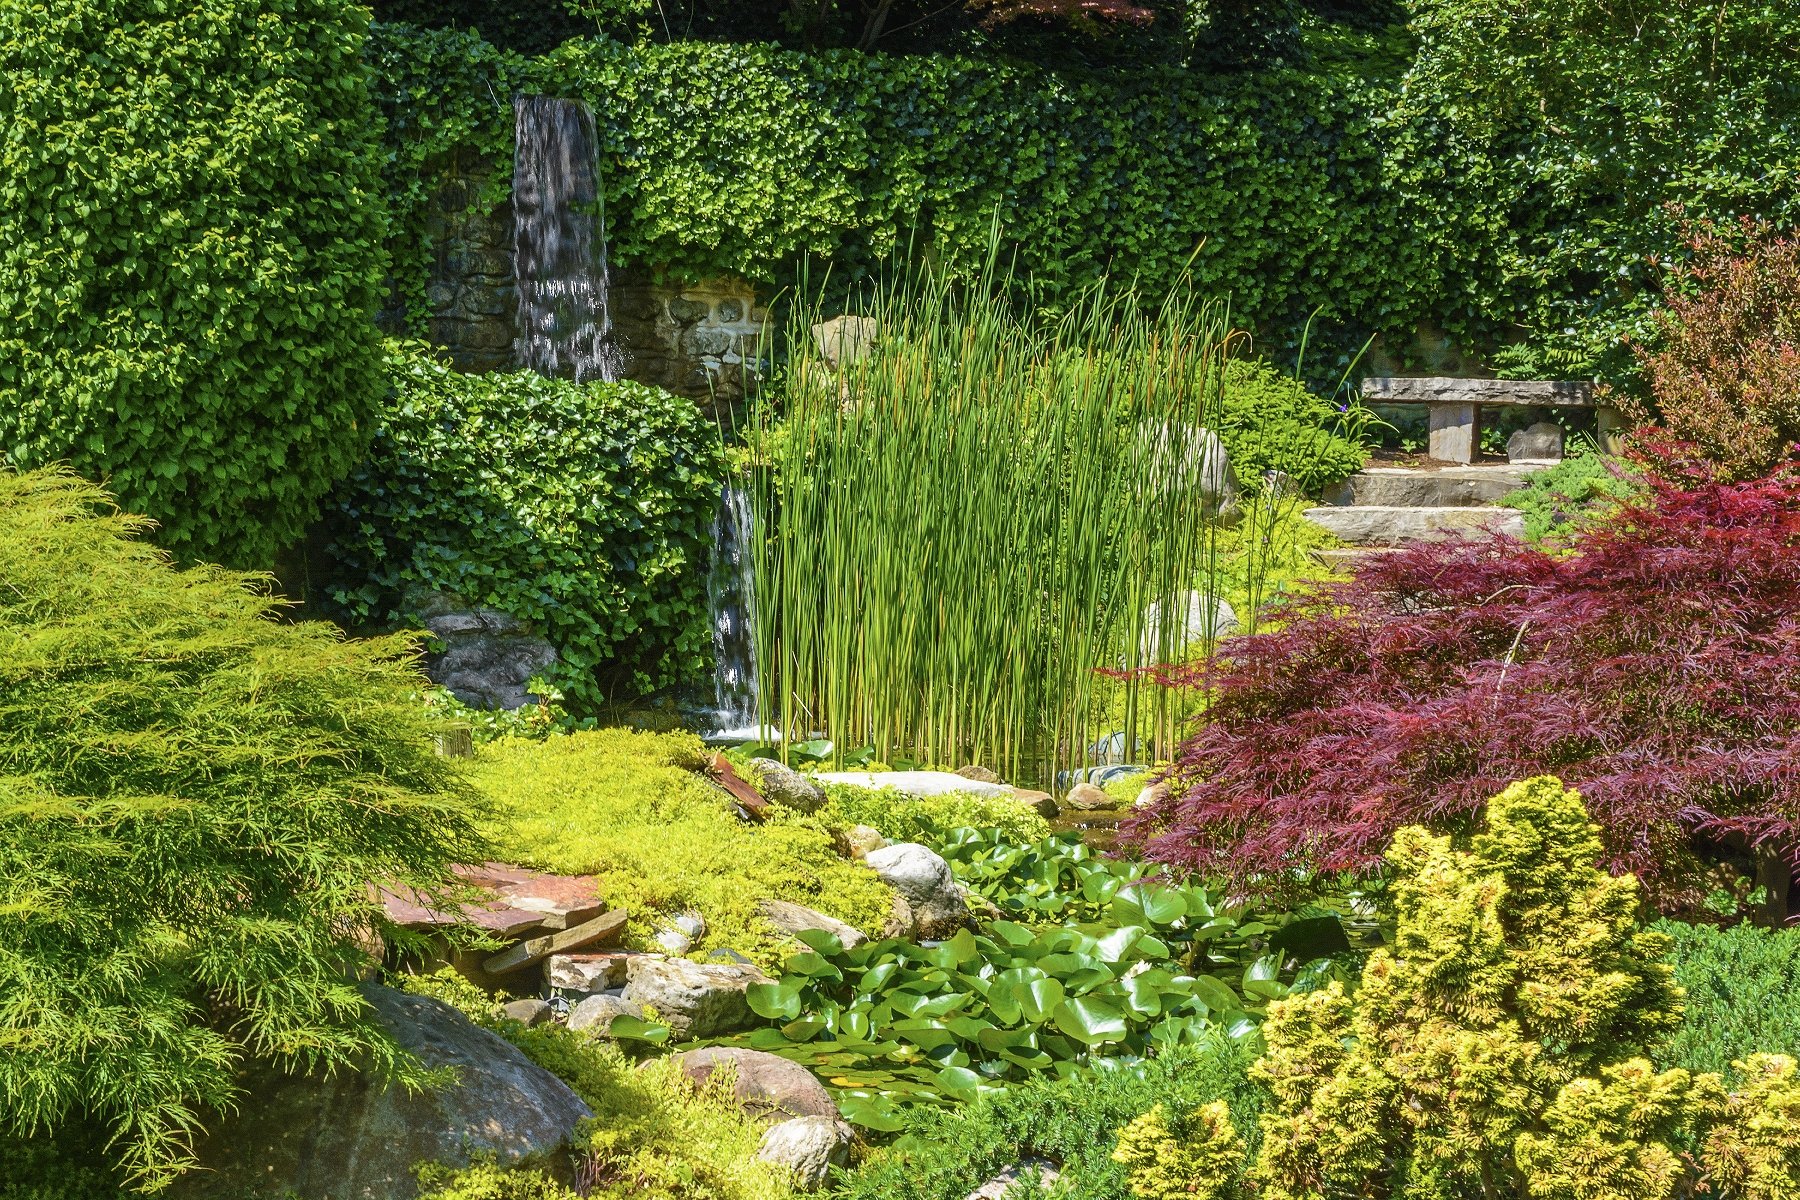 Creating japanese gardens inspiration tierra este 71226 for Creating a japanese garden